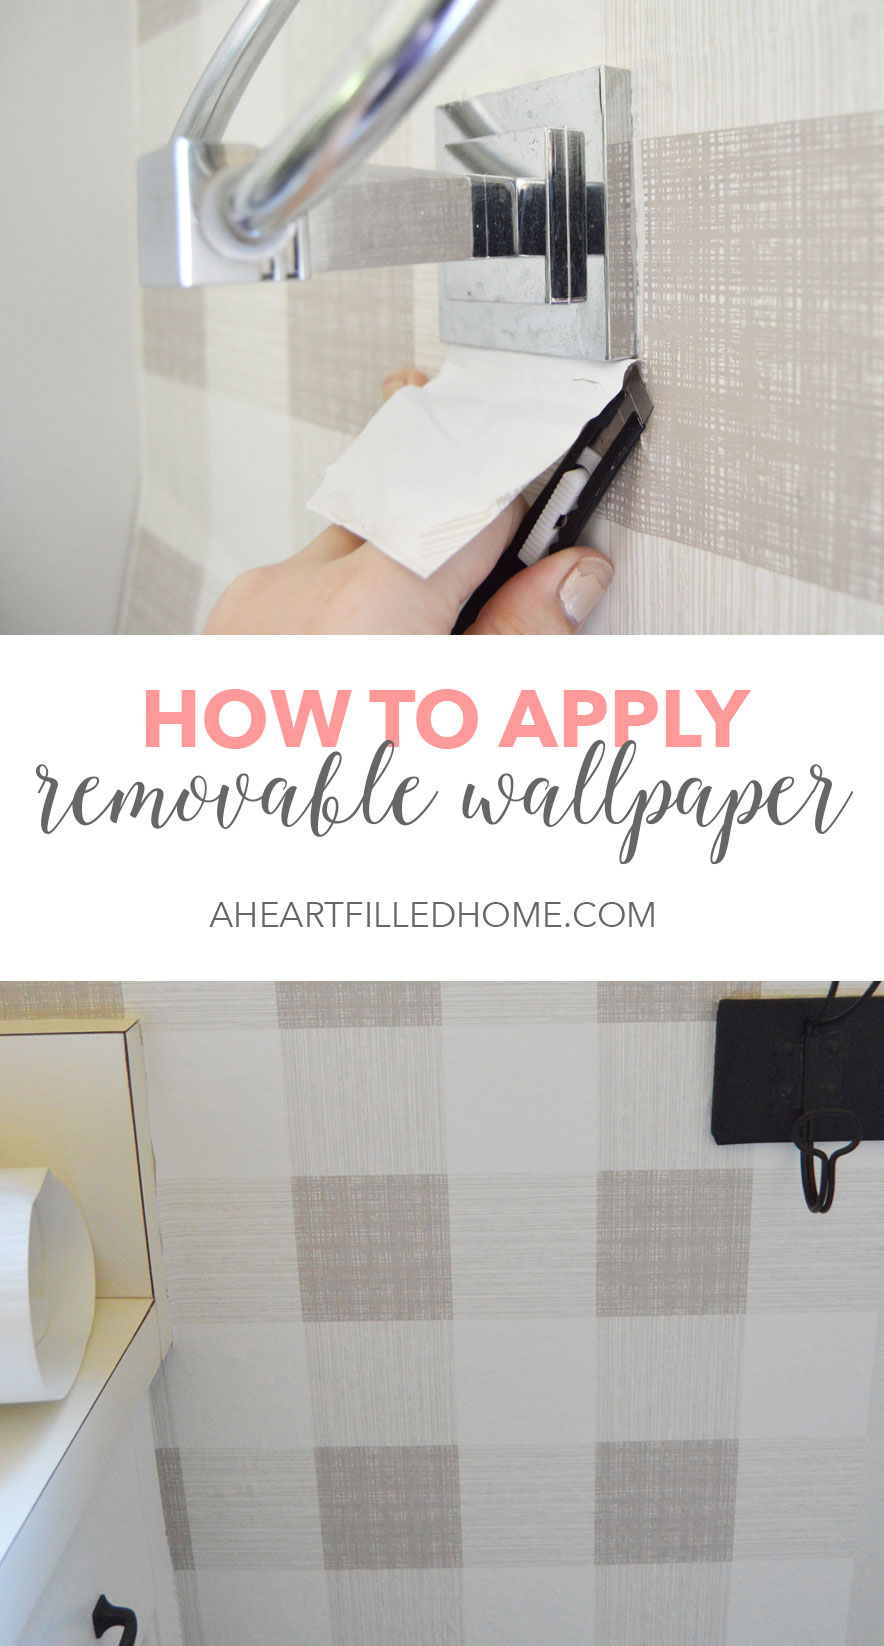 How To Apply Removable Wallpaper! It is so easy to transform a wall with peel and stick wallpaper!